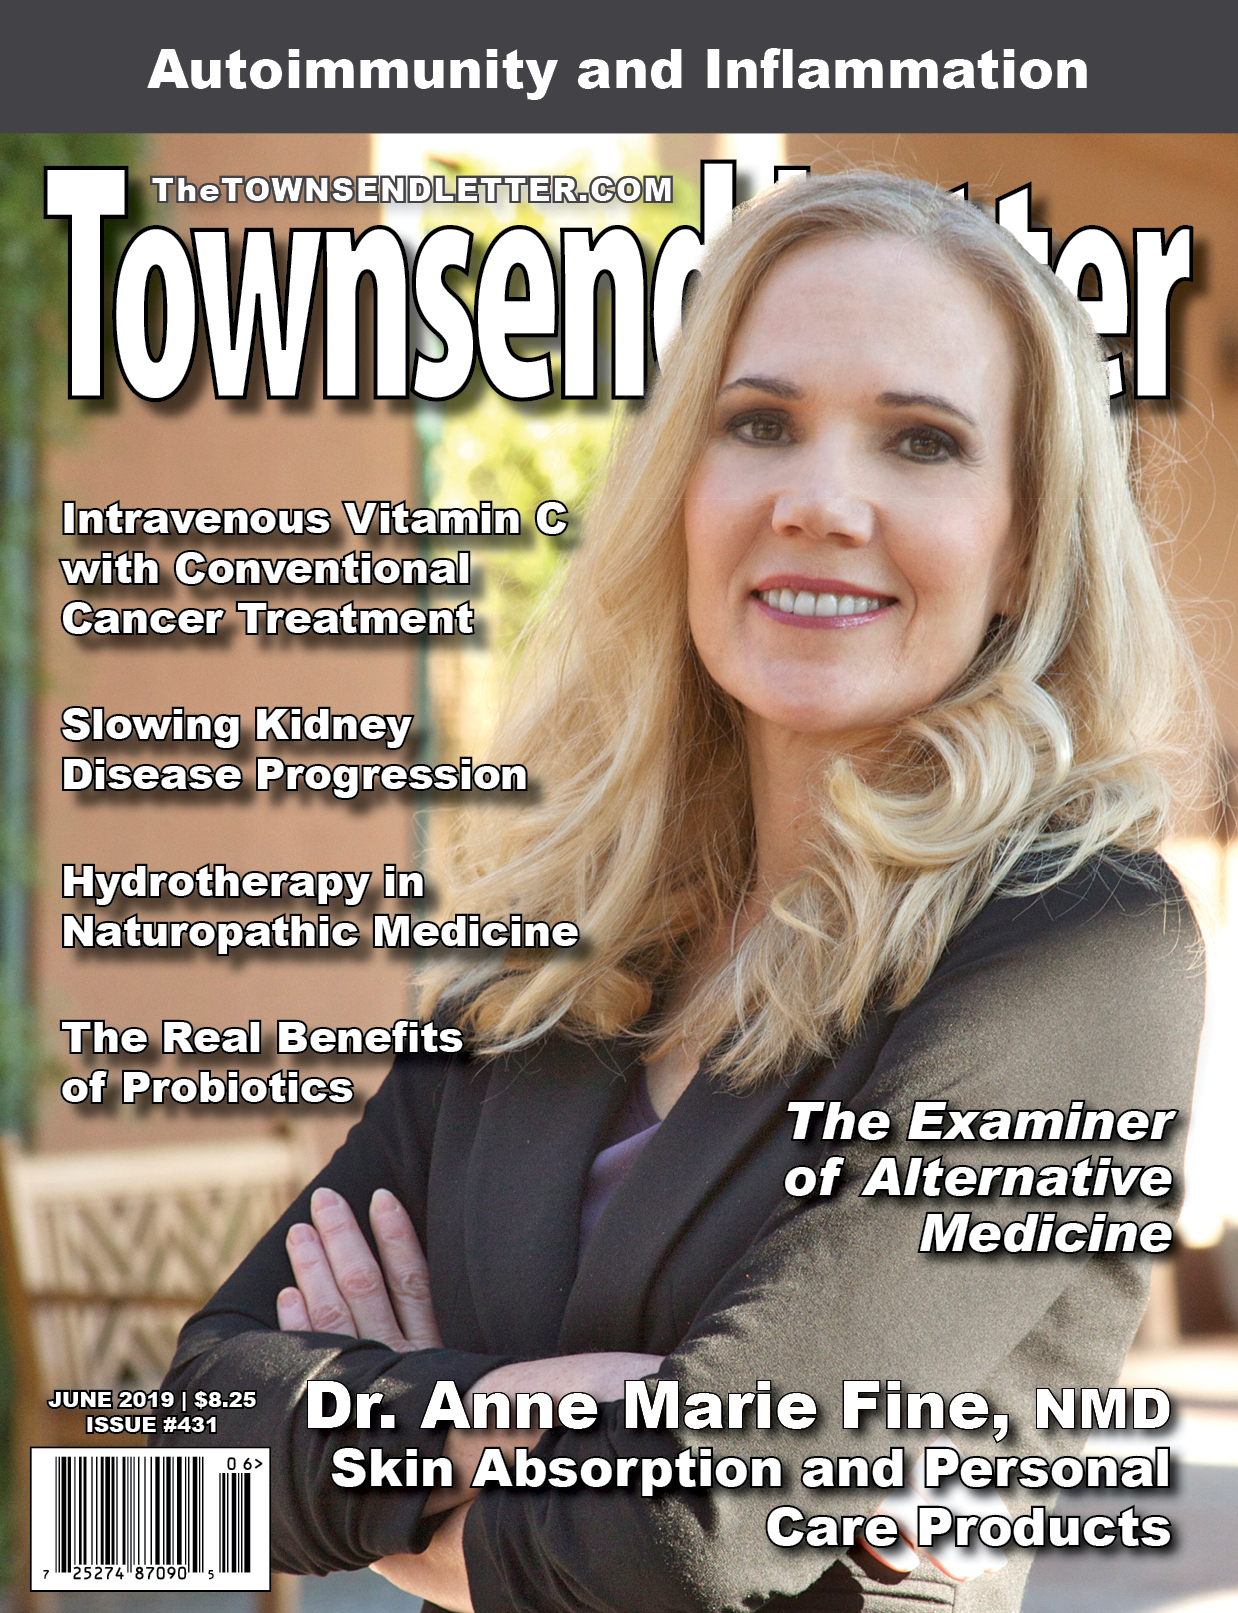 Our June 2019 issue  #431